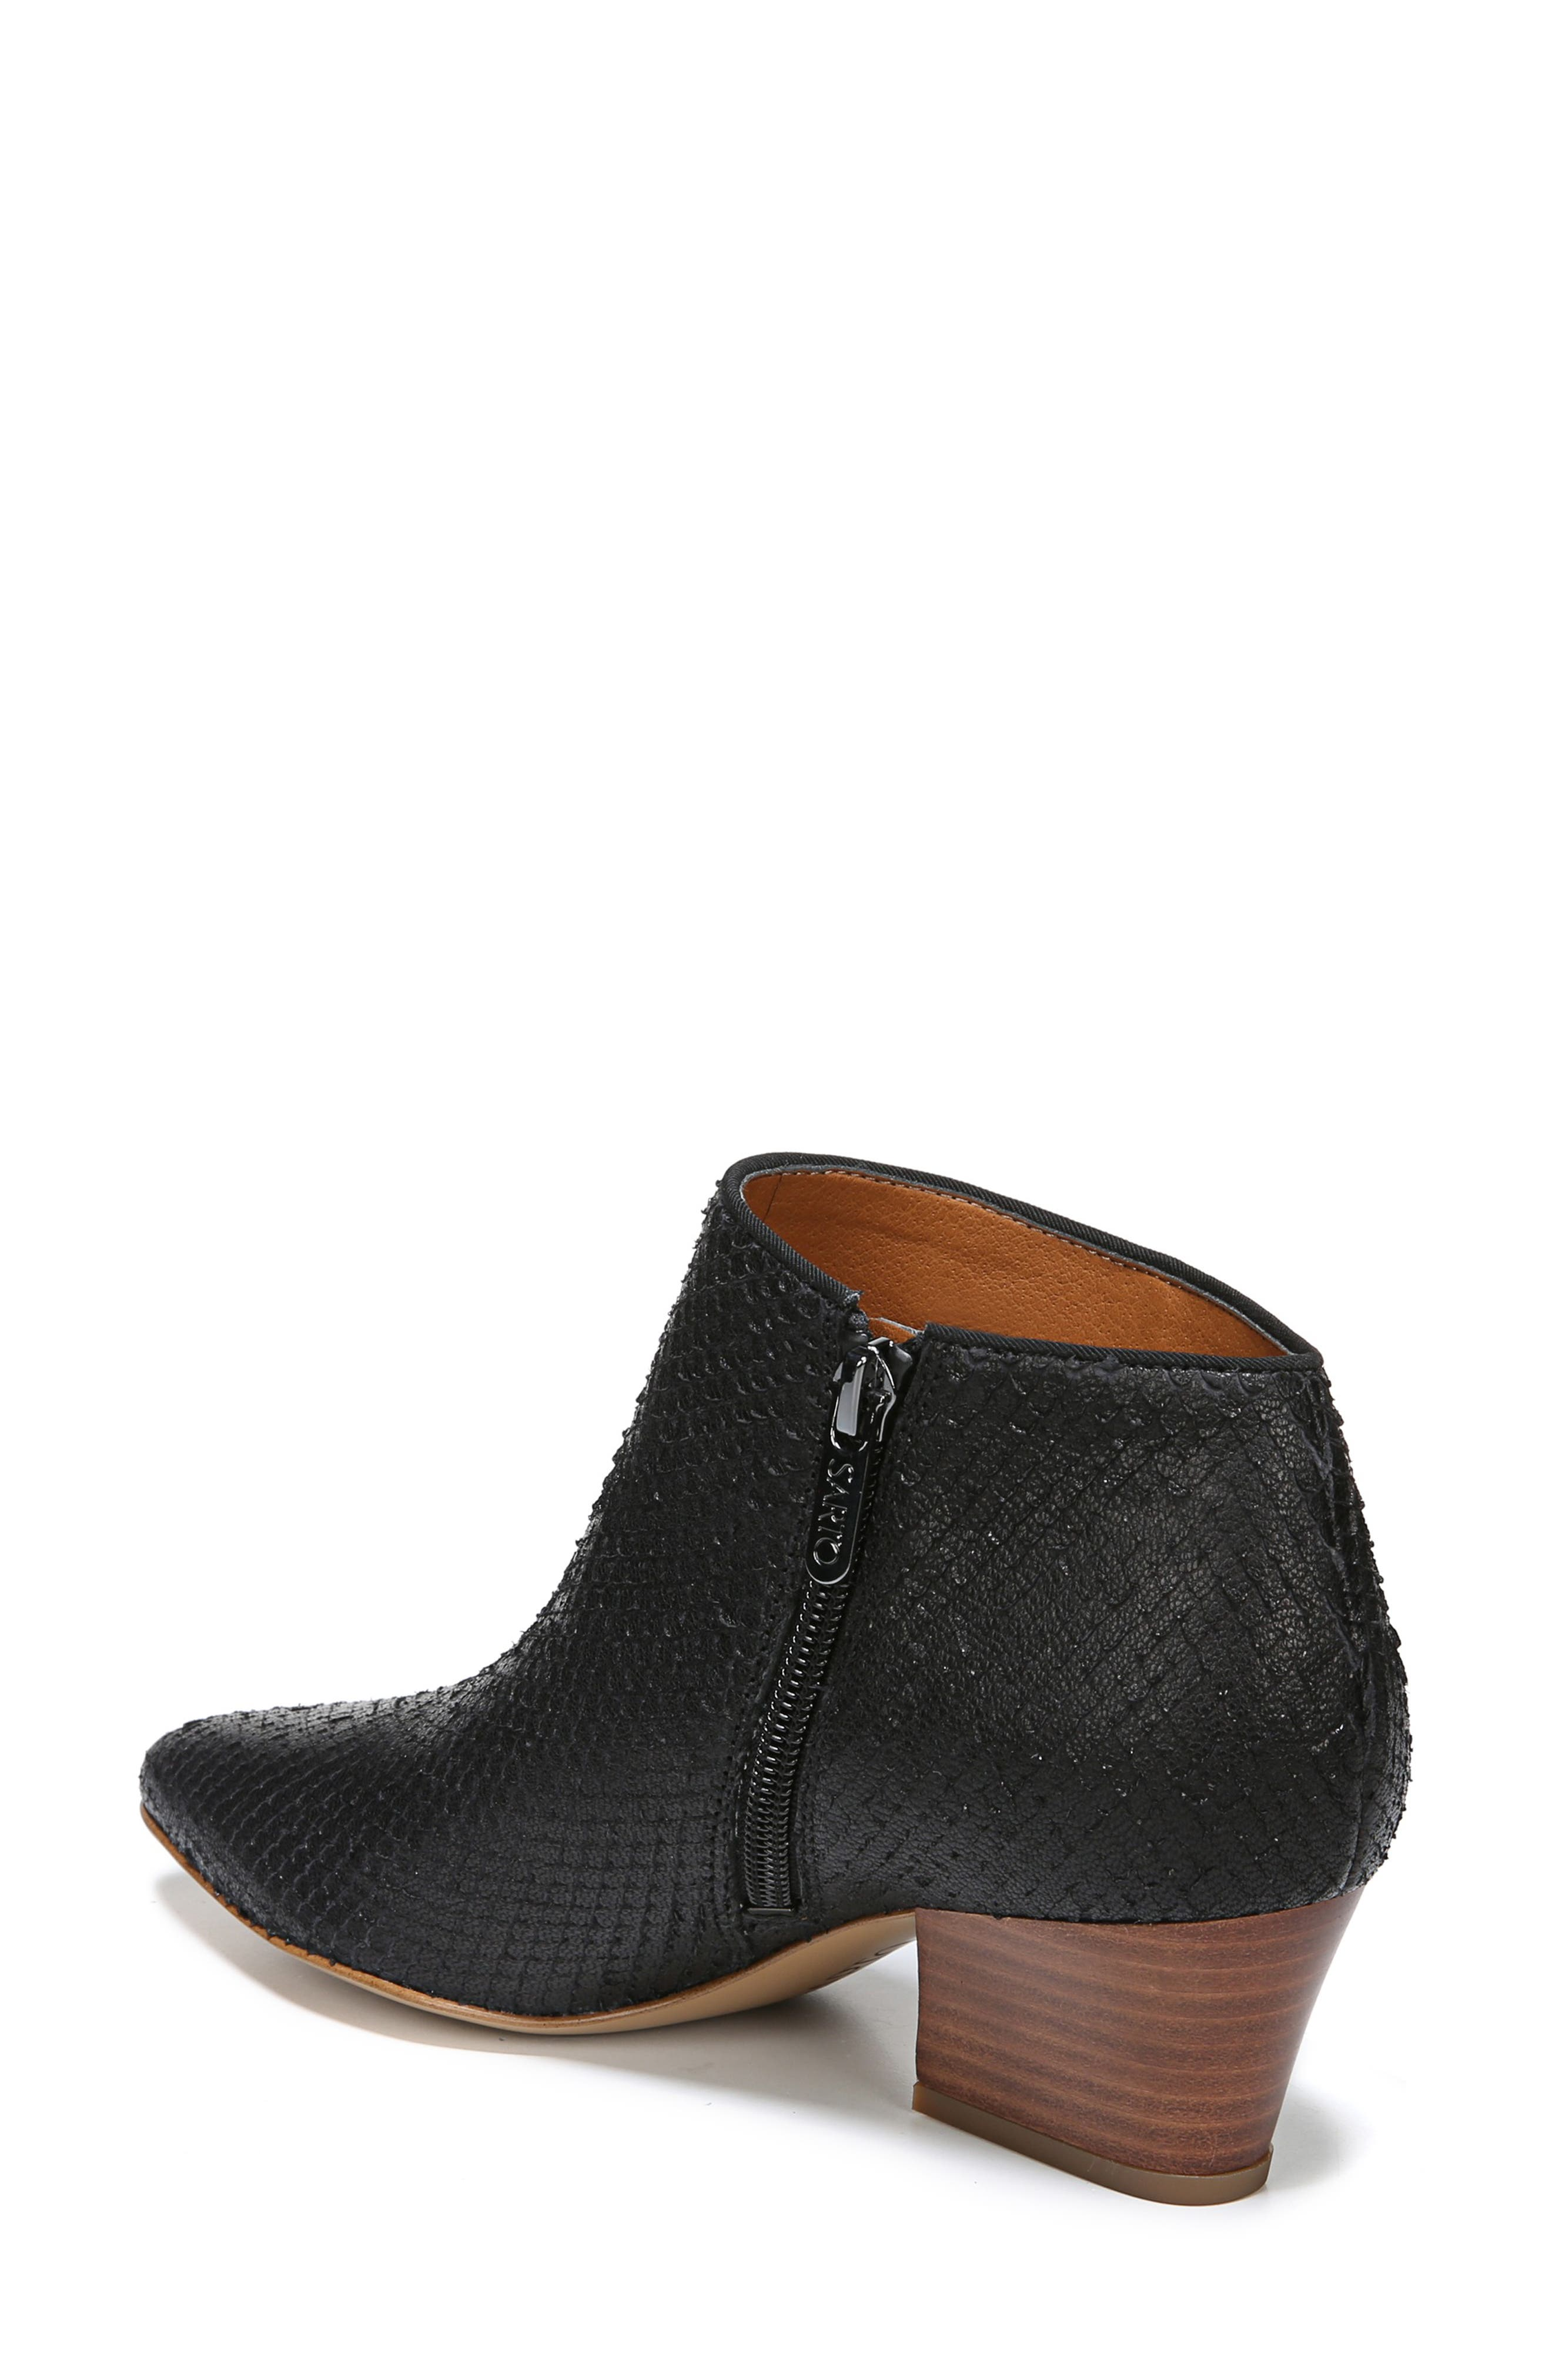 Lowe Bootie,                             Alternate thumbnail 2, color,                             BLACK SNAKE PRINT LEATHER